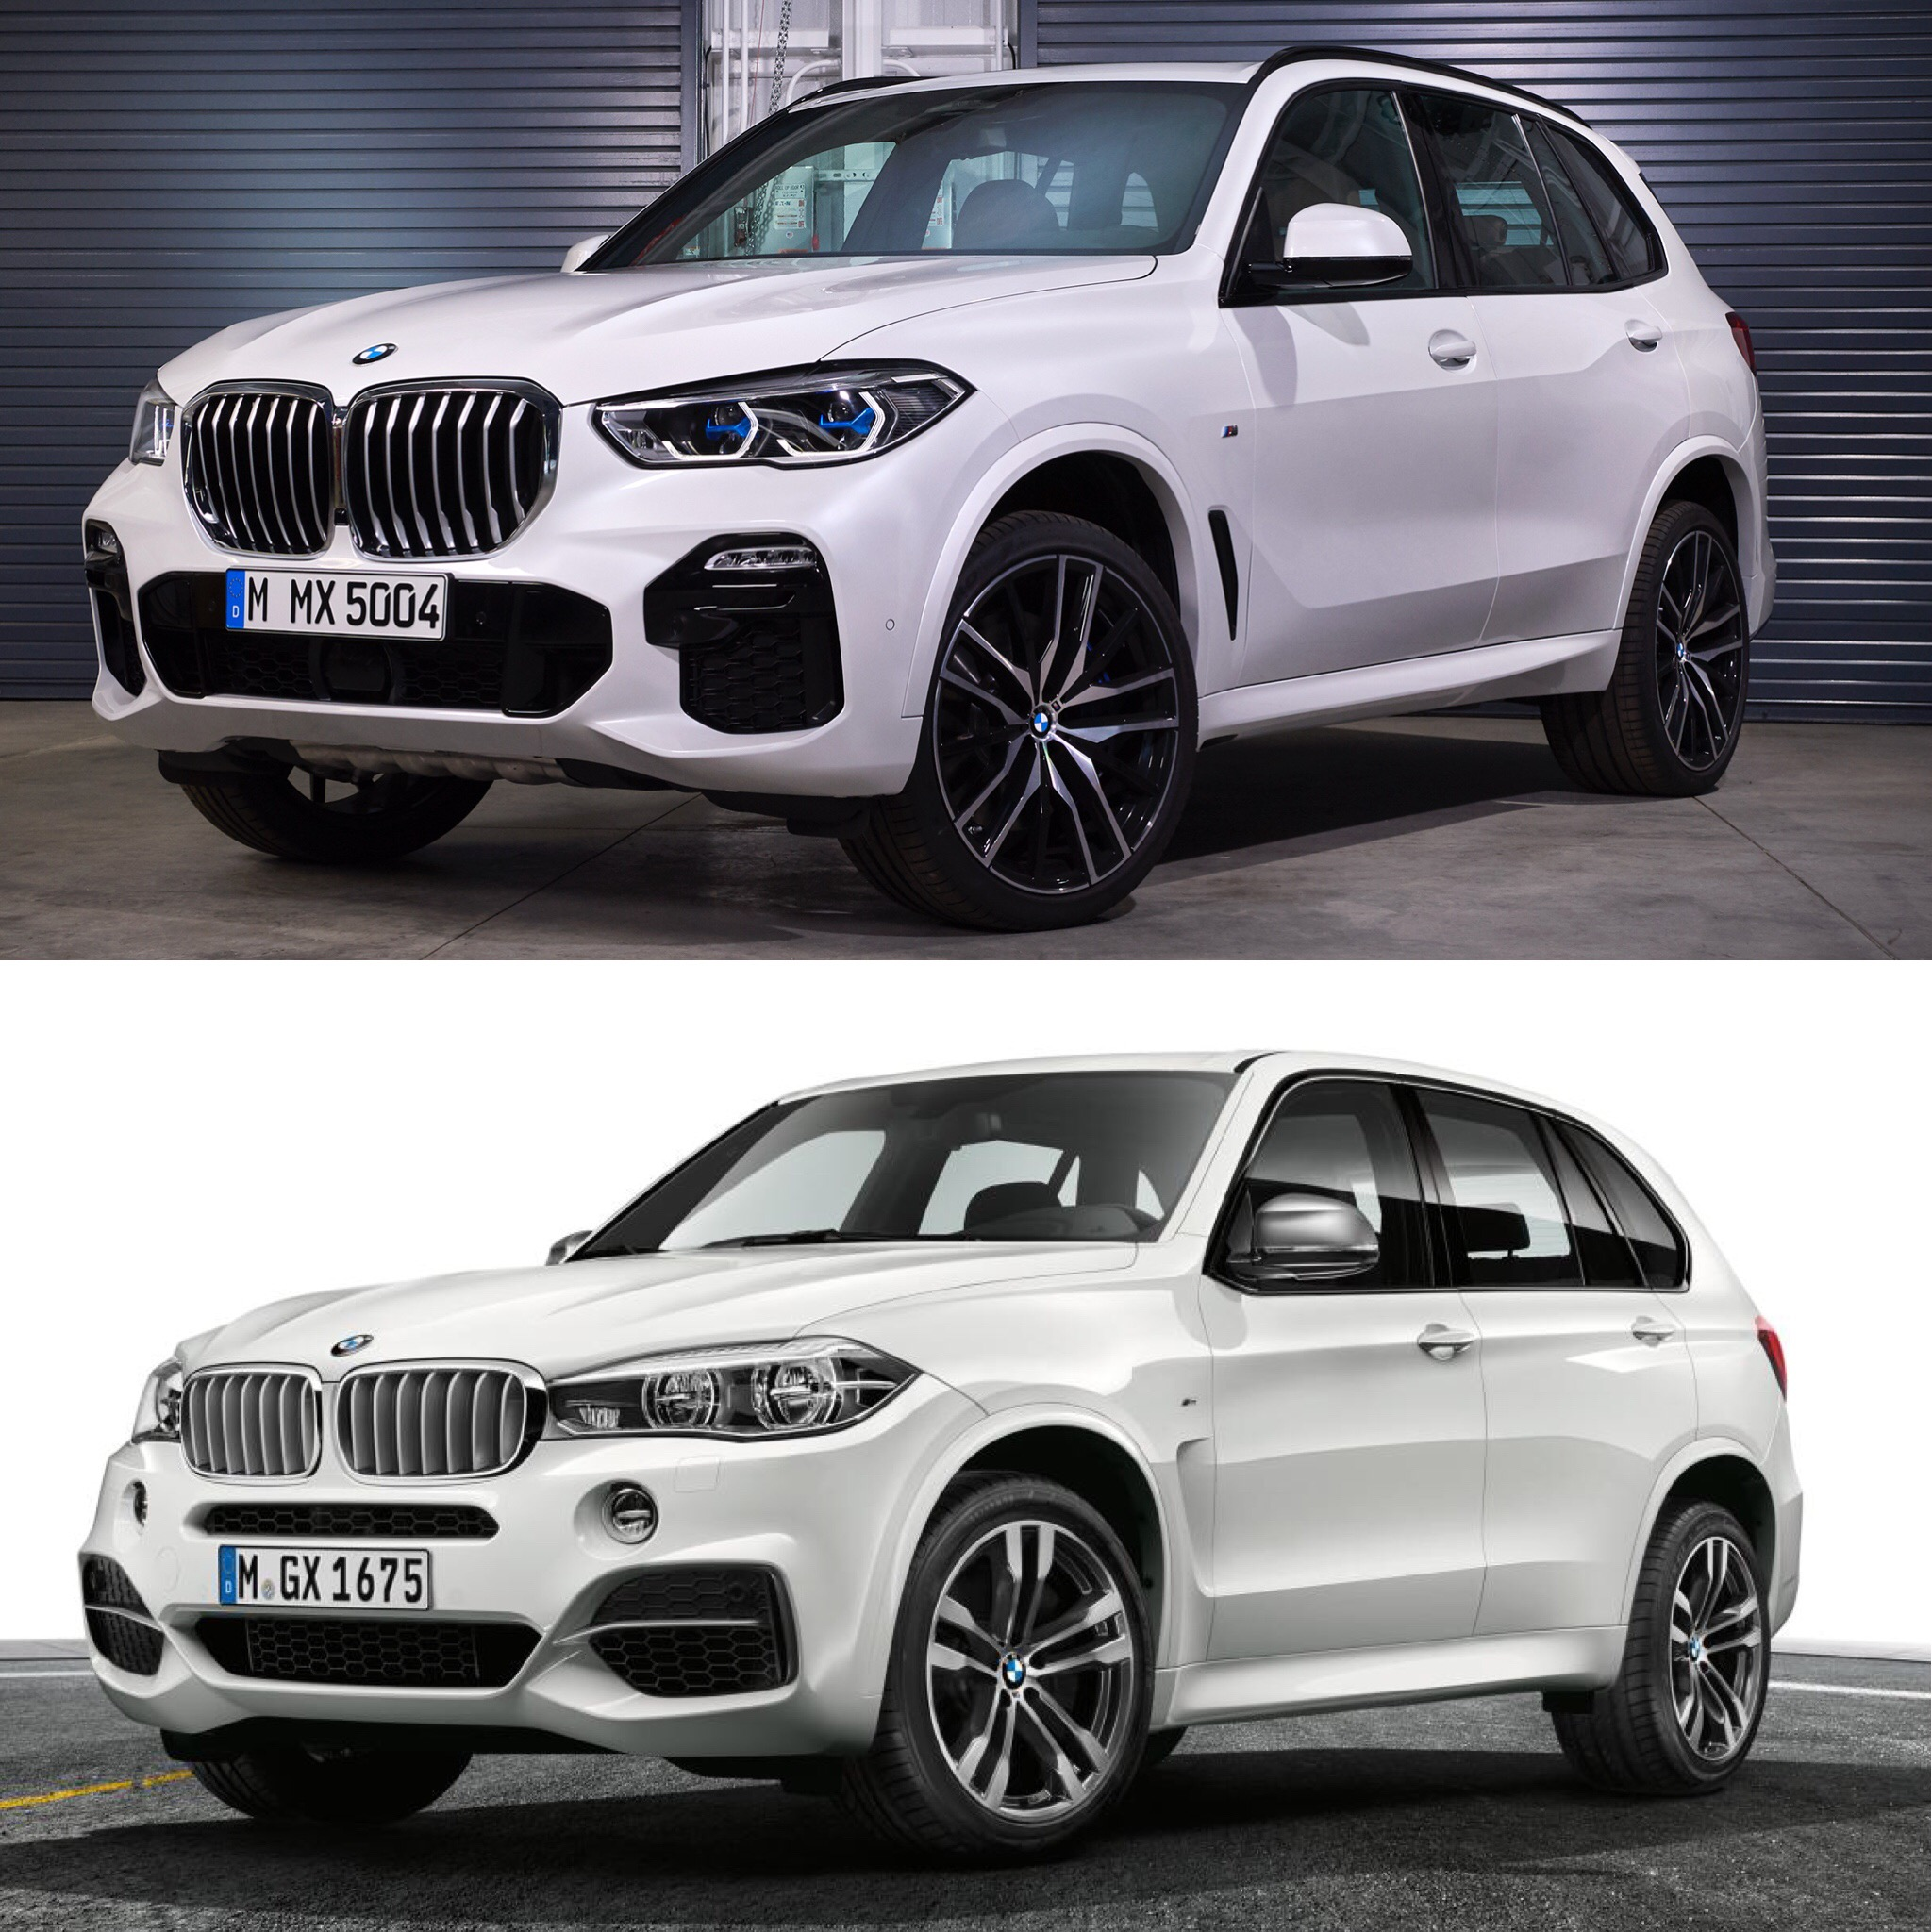 New BMW X5 vs old X5 6